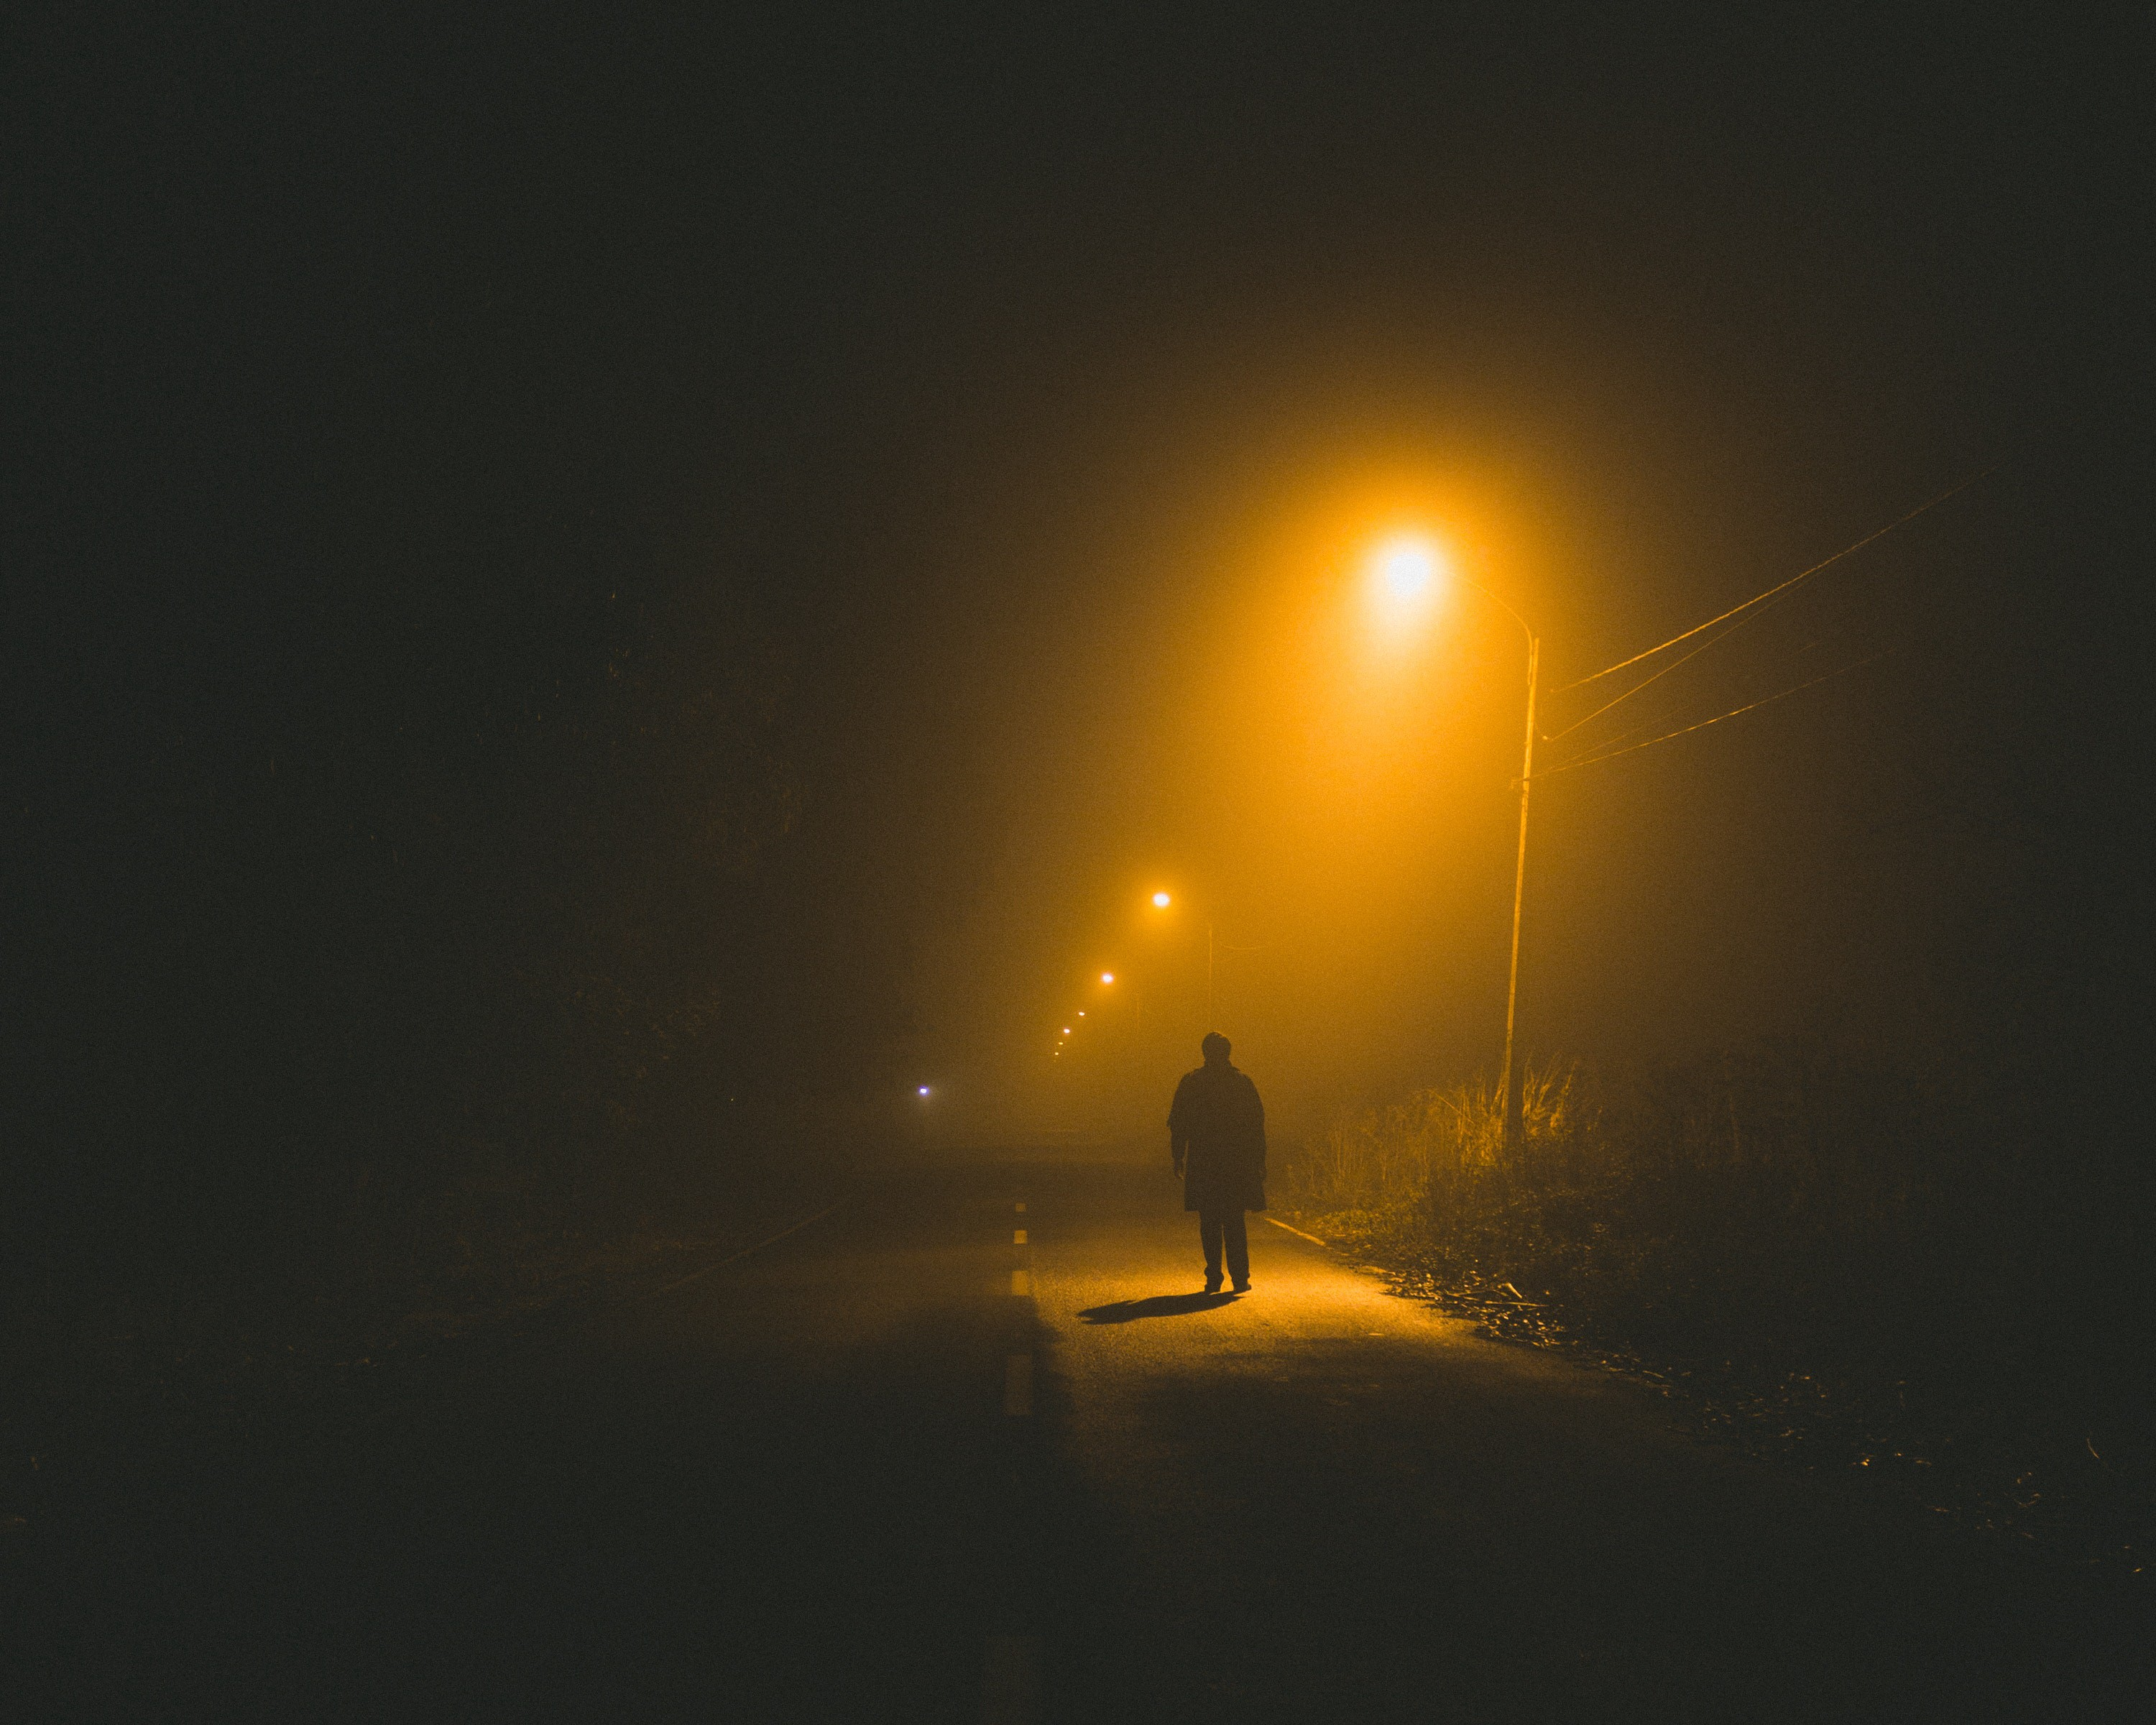 3 True Scary Horror Stories From Reddit R Letsnotmeet By Tony Yeung Life Hack Your Story Experience Etc Medium First person accounts narrated and produced by andrew tate in an anthology of terror and suspense. 3 true scary horror stories from reddit